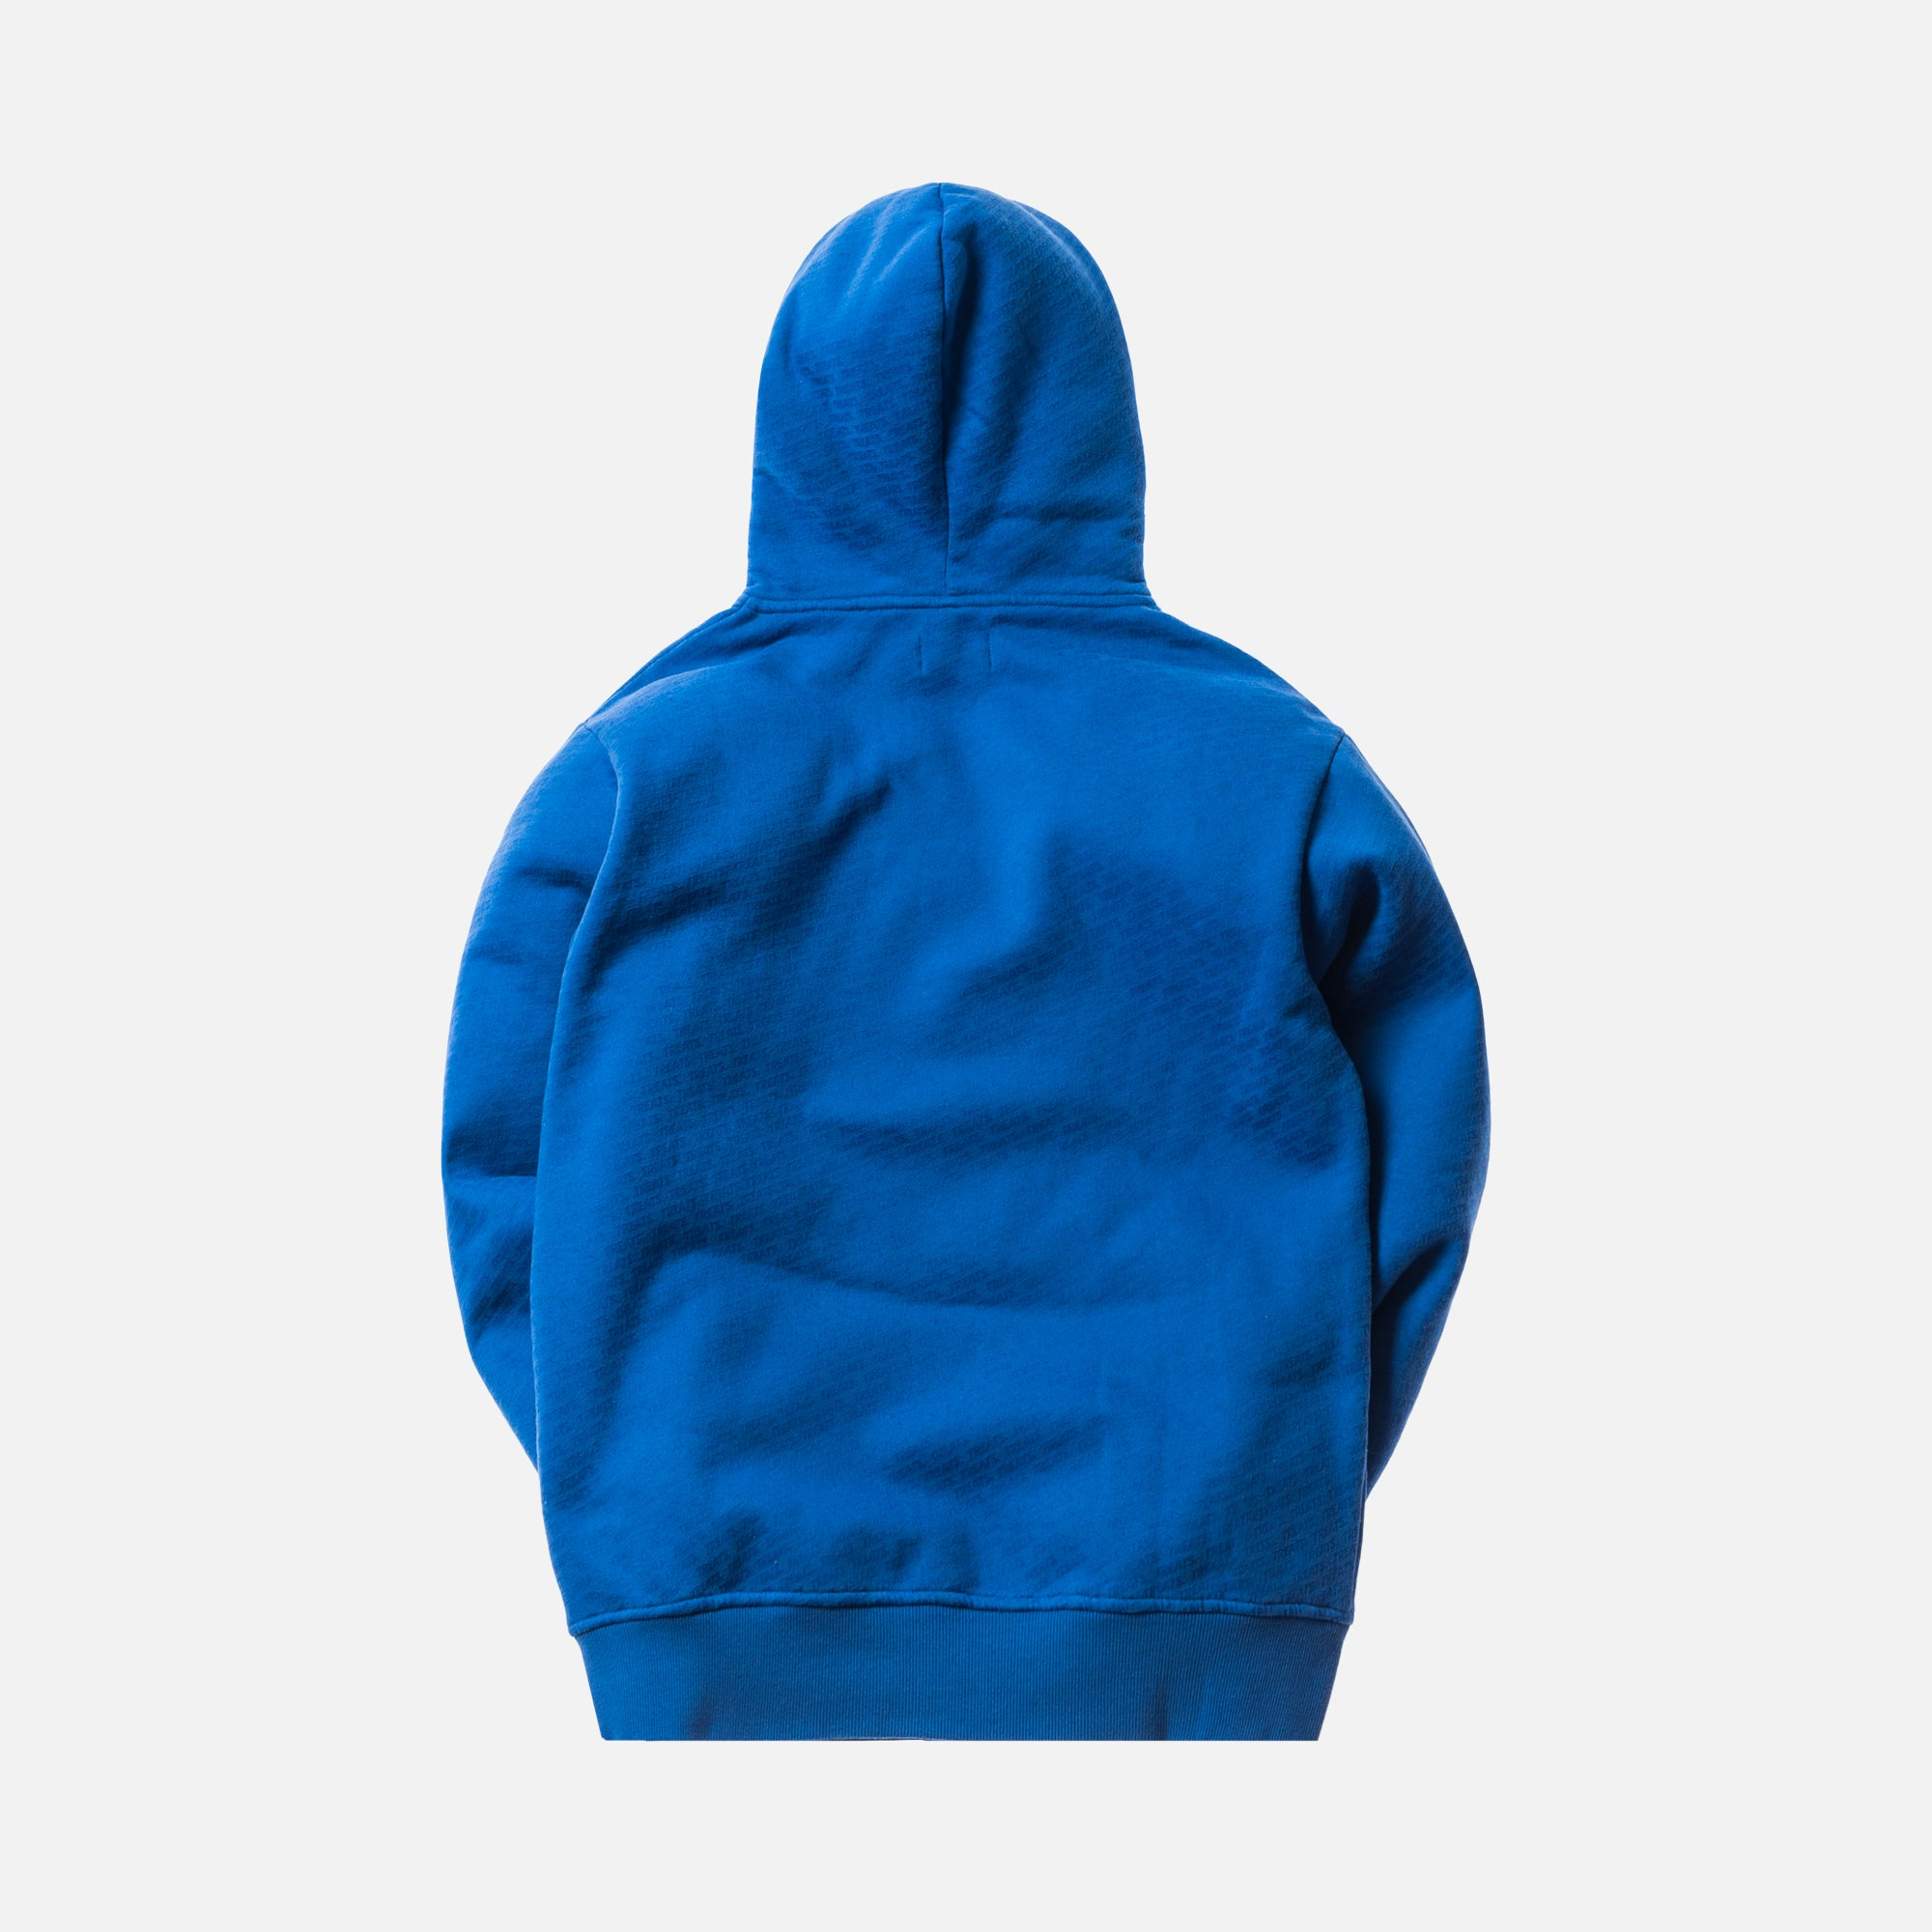 Kith Treats Cereal Boy Hoodie - Royal